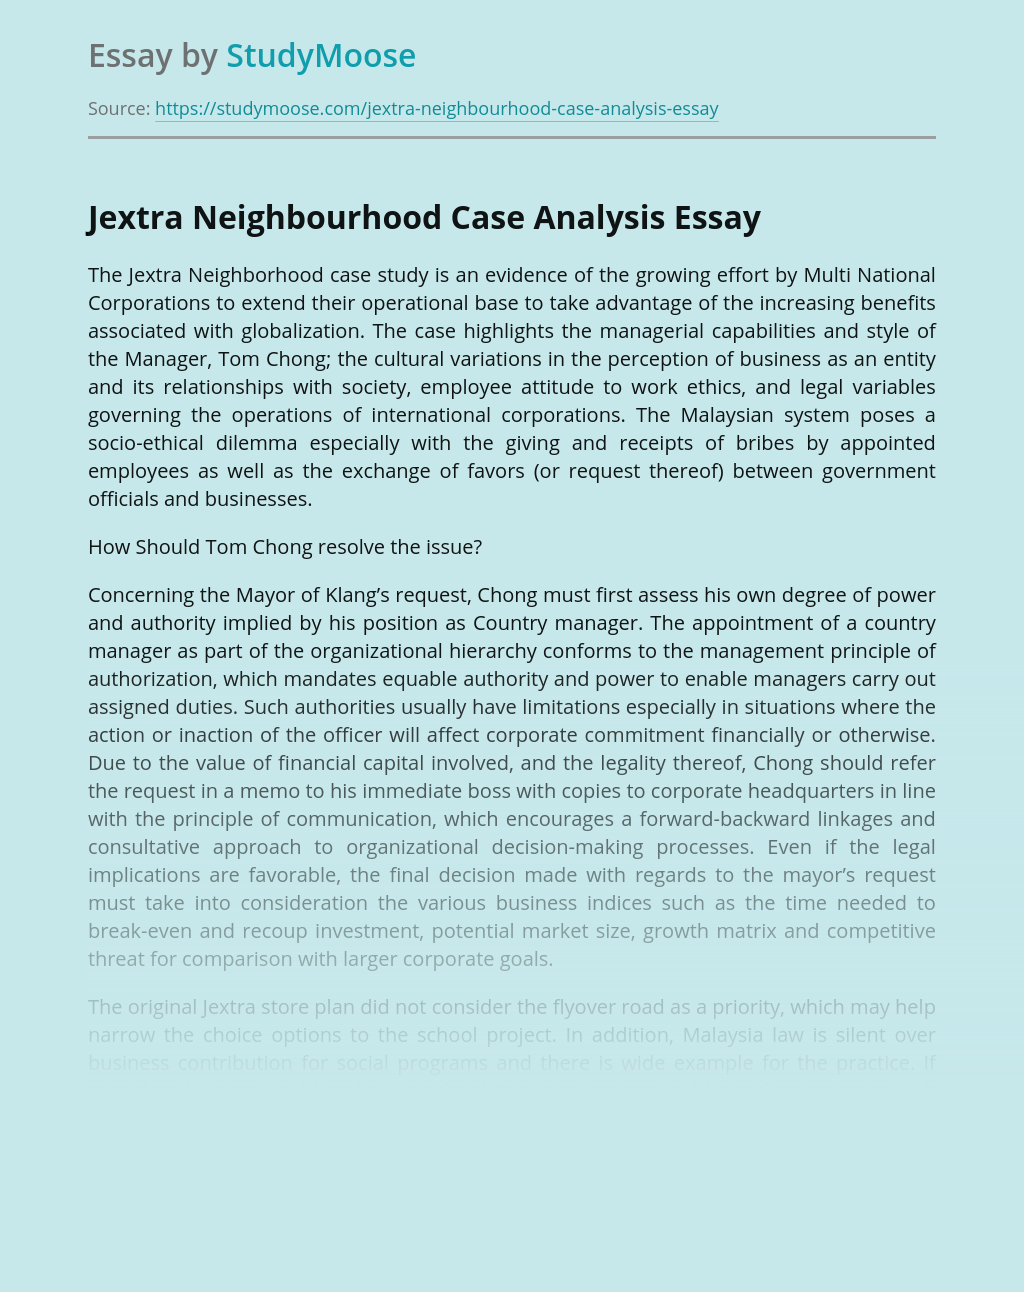 Jextra Neighborhood Corporation Case Analysis